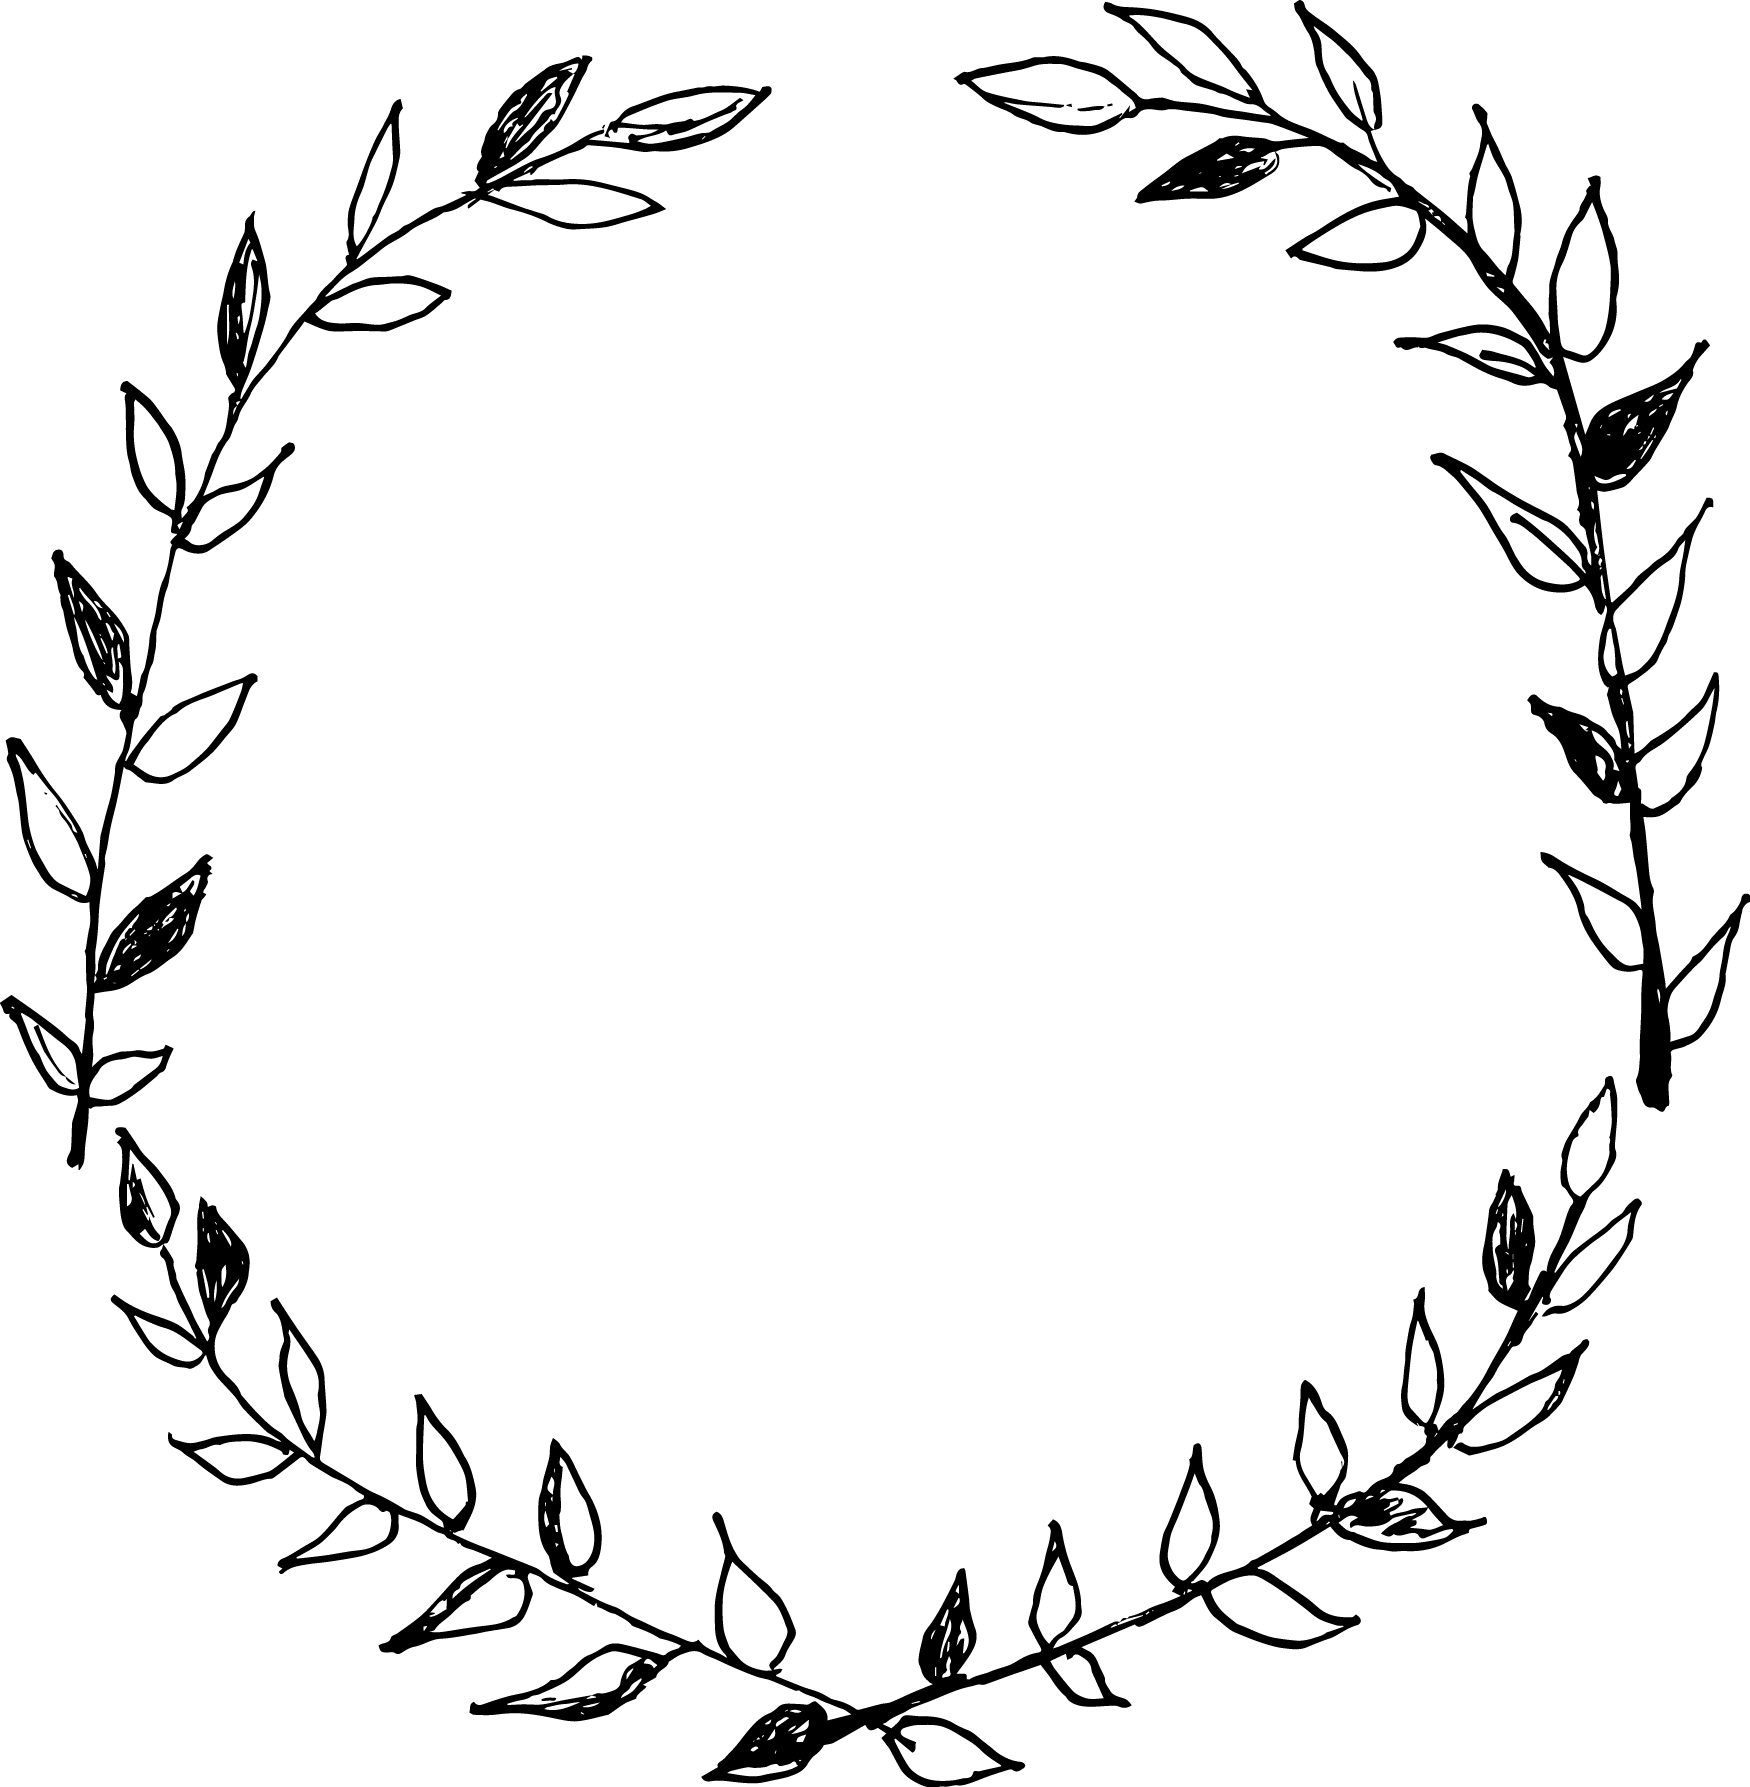 Laurel drawing. Wreath clip art black